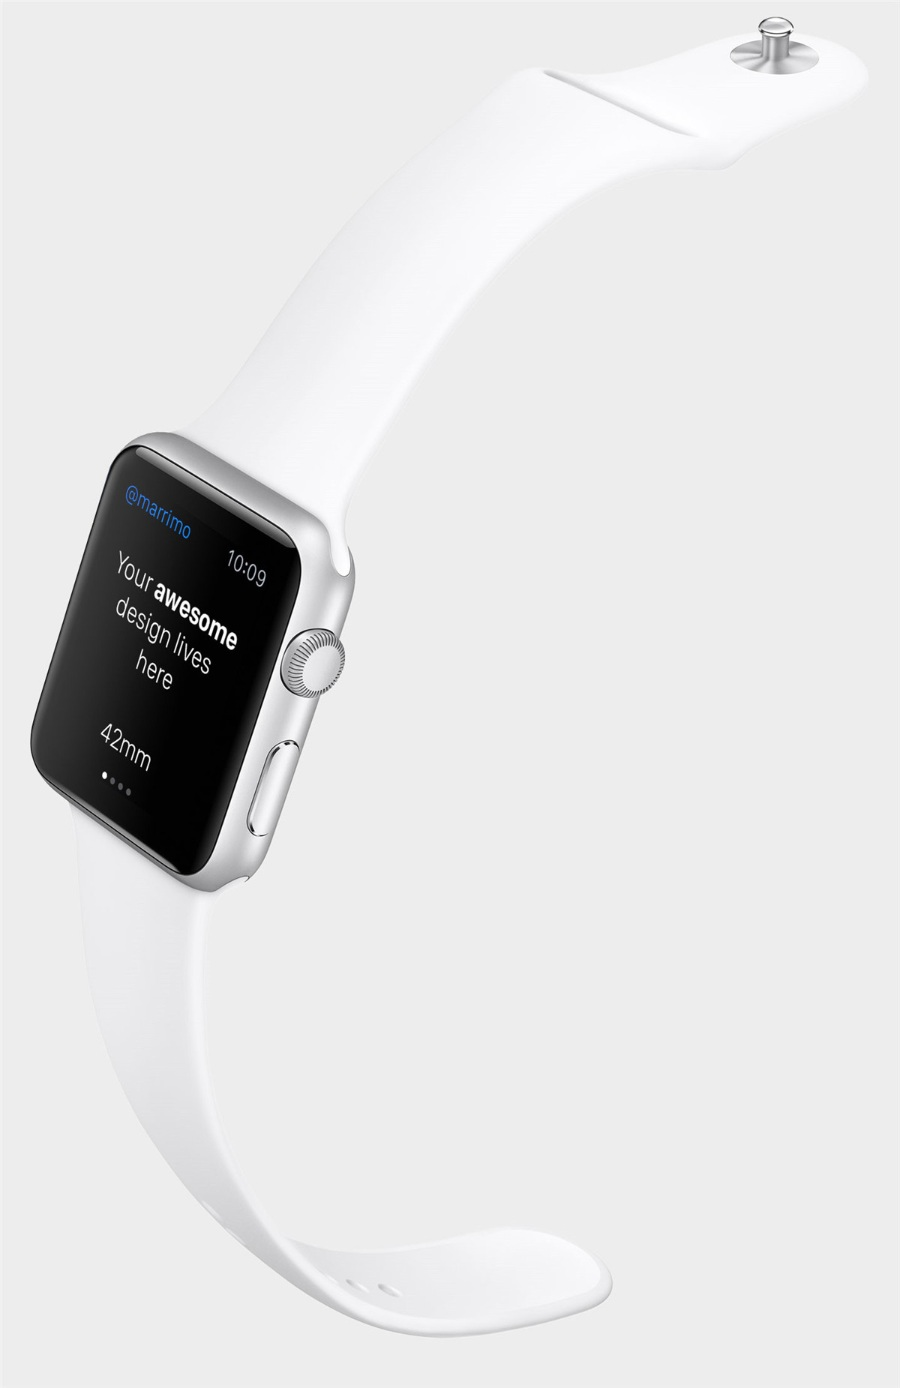 Apple Watch手表模型psd样机